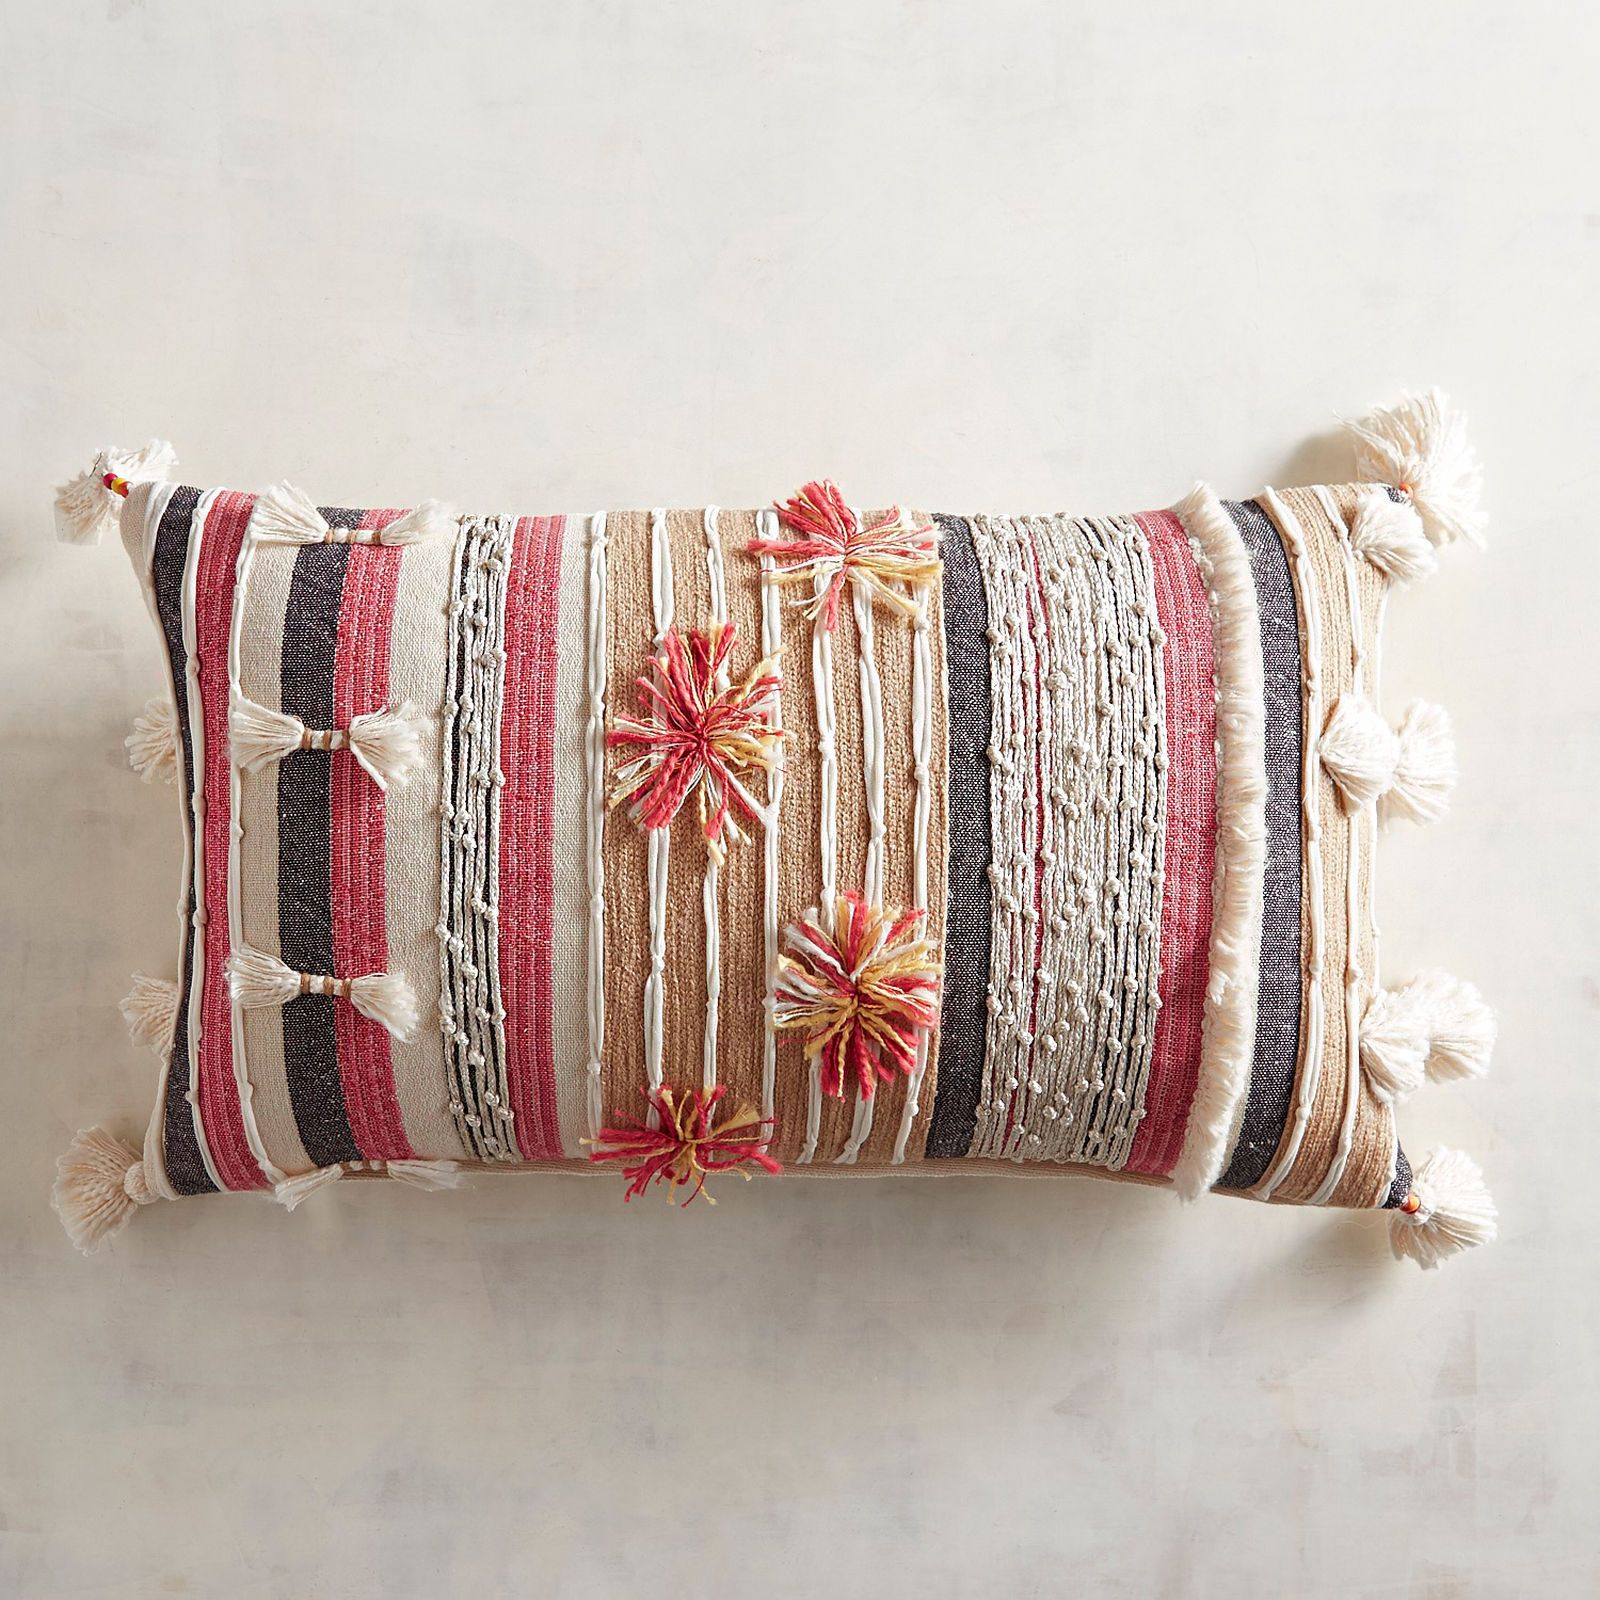 Tufted textured striped pillow hey mtv welcome to my crib